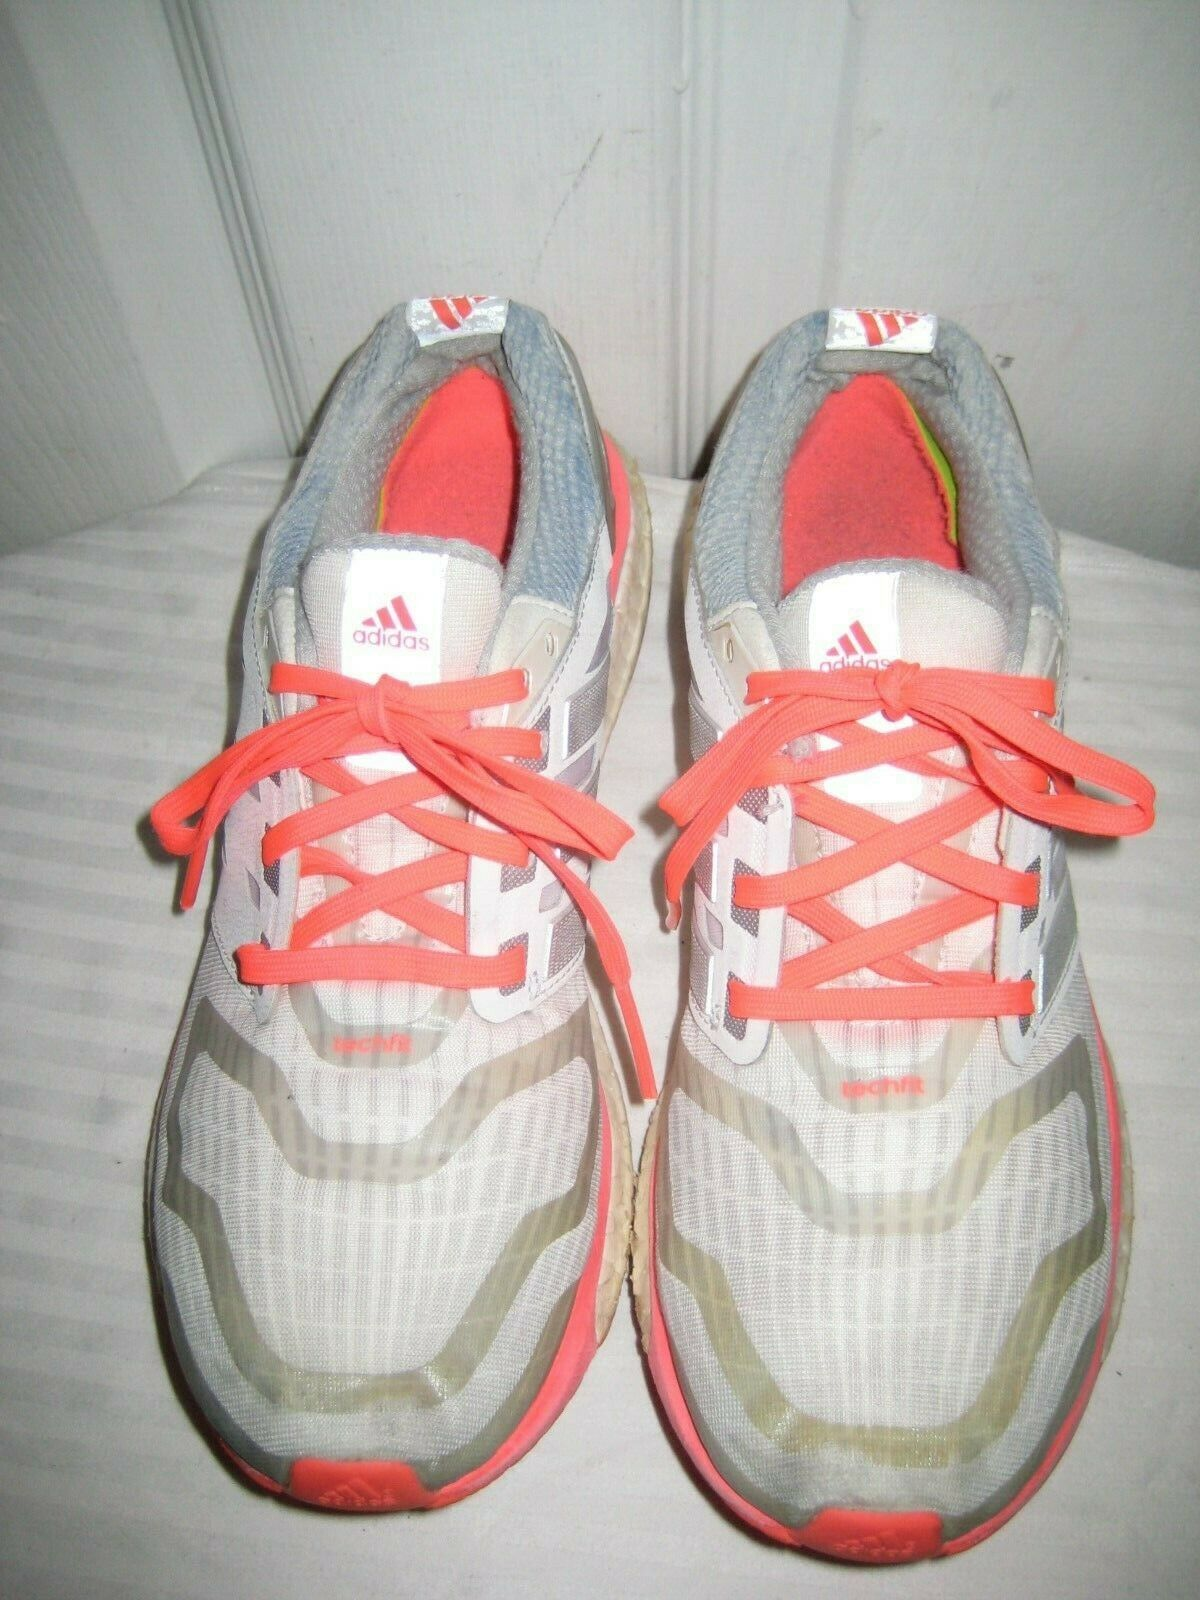 Adidas Energy Boost  Q33960 Women's shoes Size 10